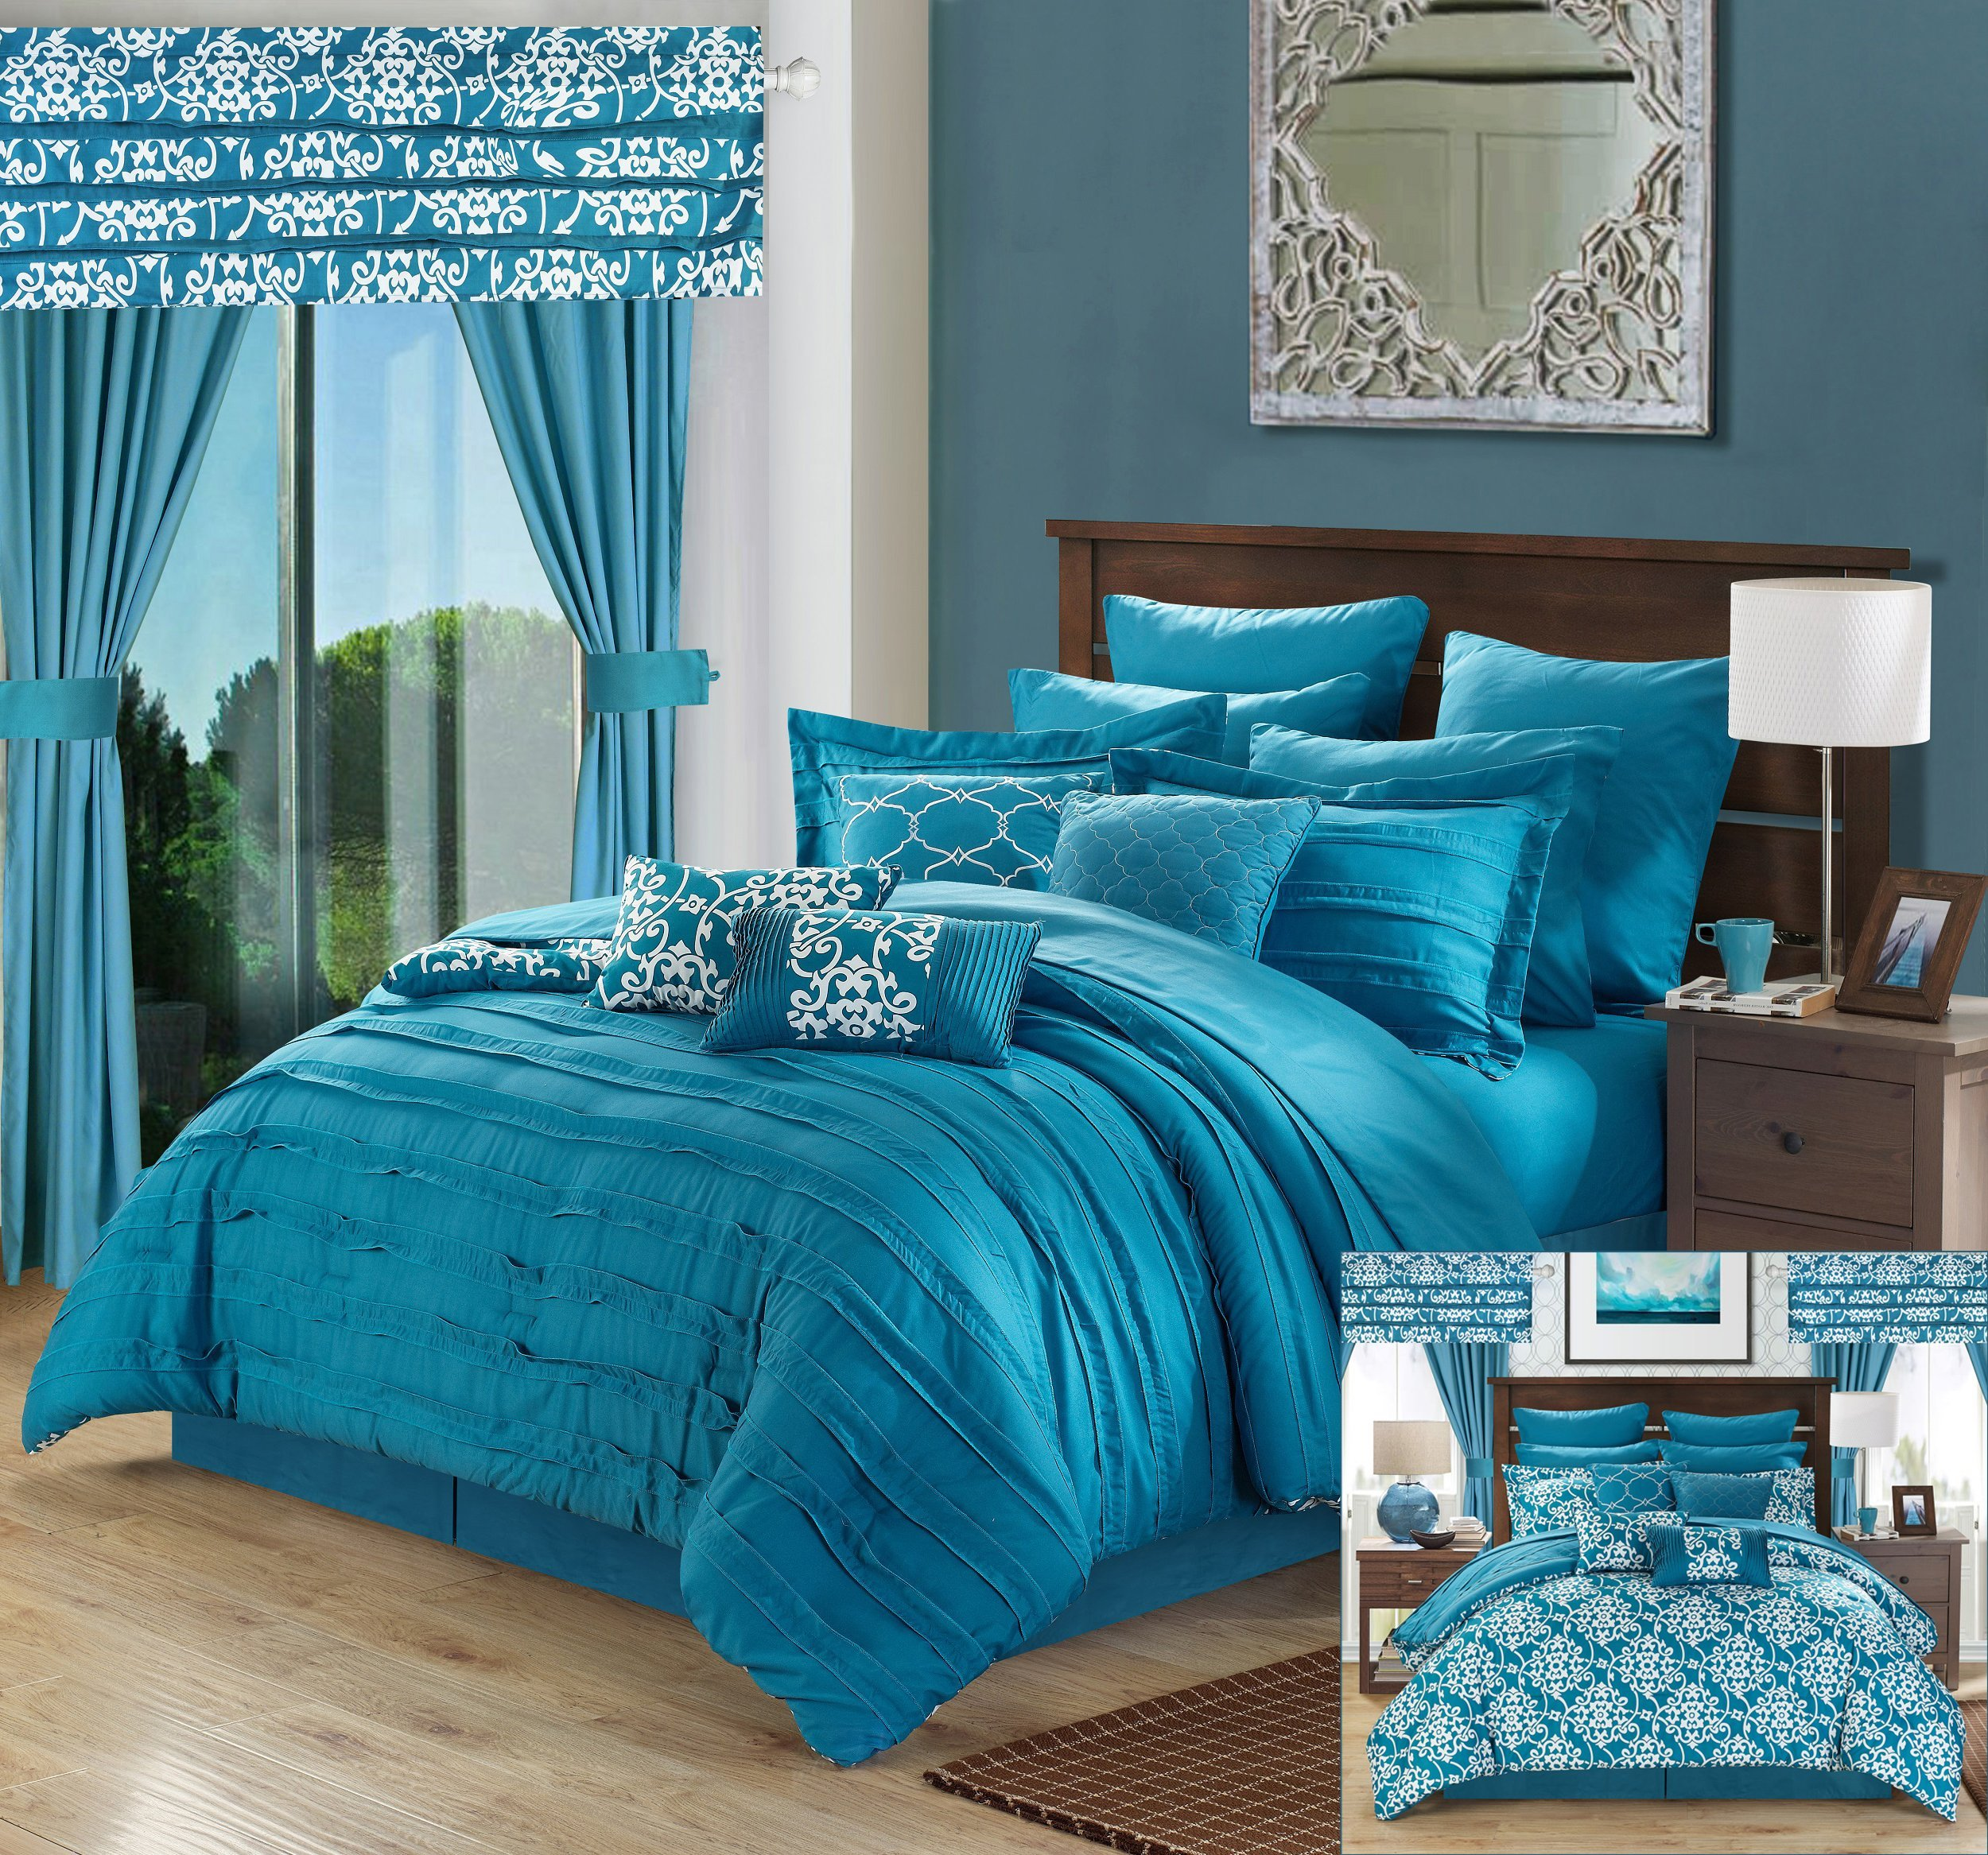 Perfect Home 24 Piece Orinda Complete Pleated ruffles and Reversible Printed Queen Bed In a Bag Comforter Set with window treatement, Teal. Sheets Included